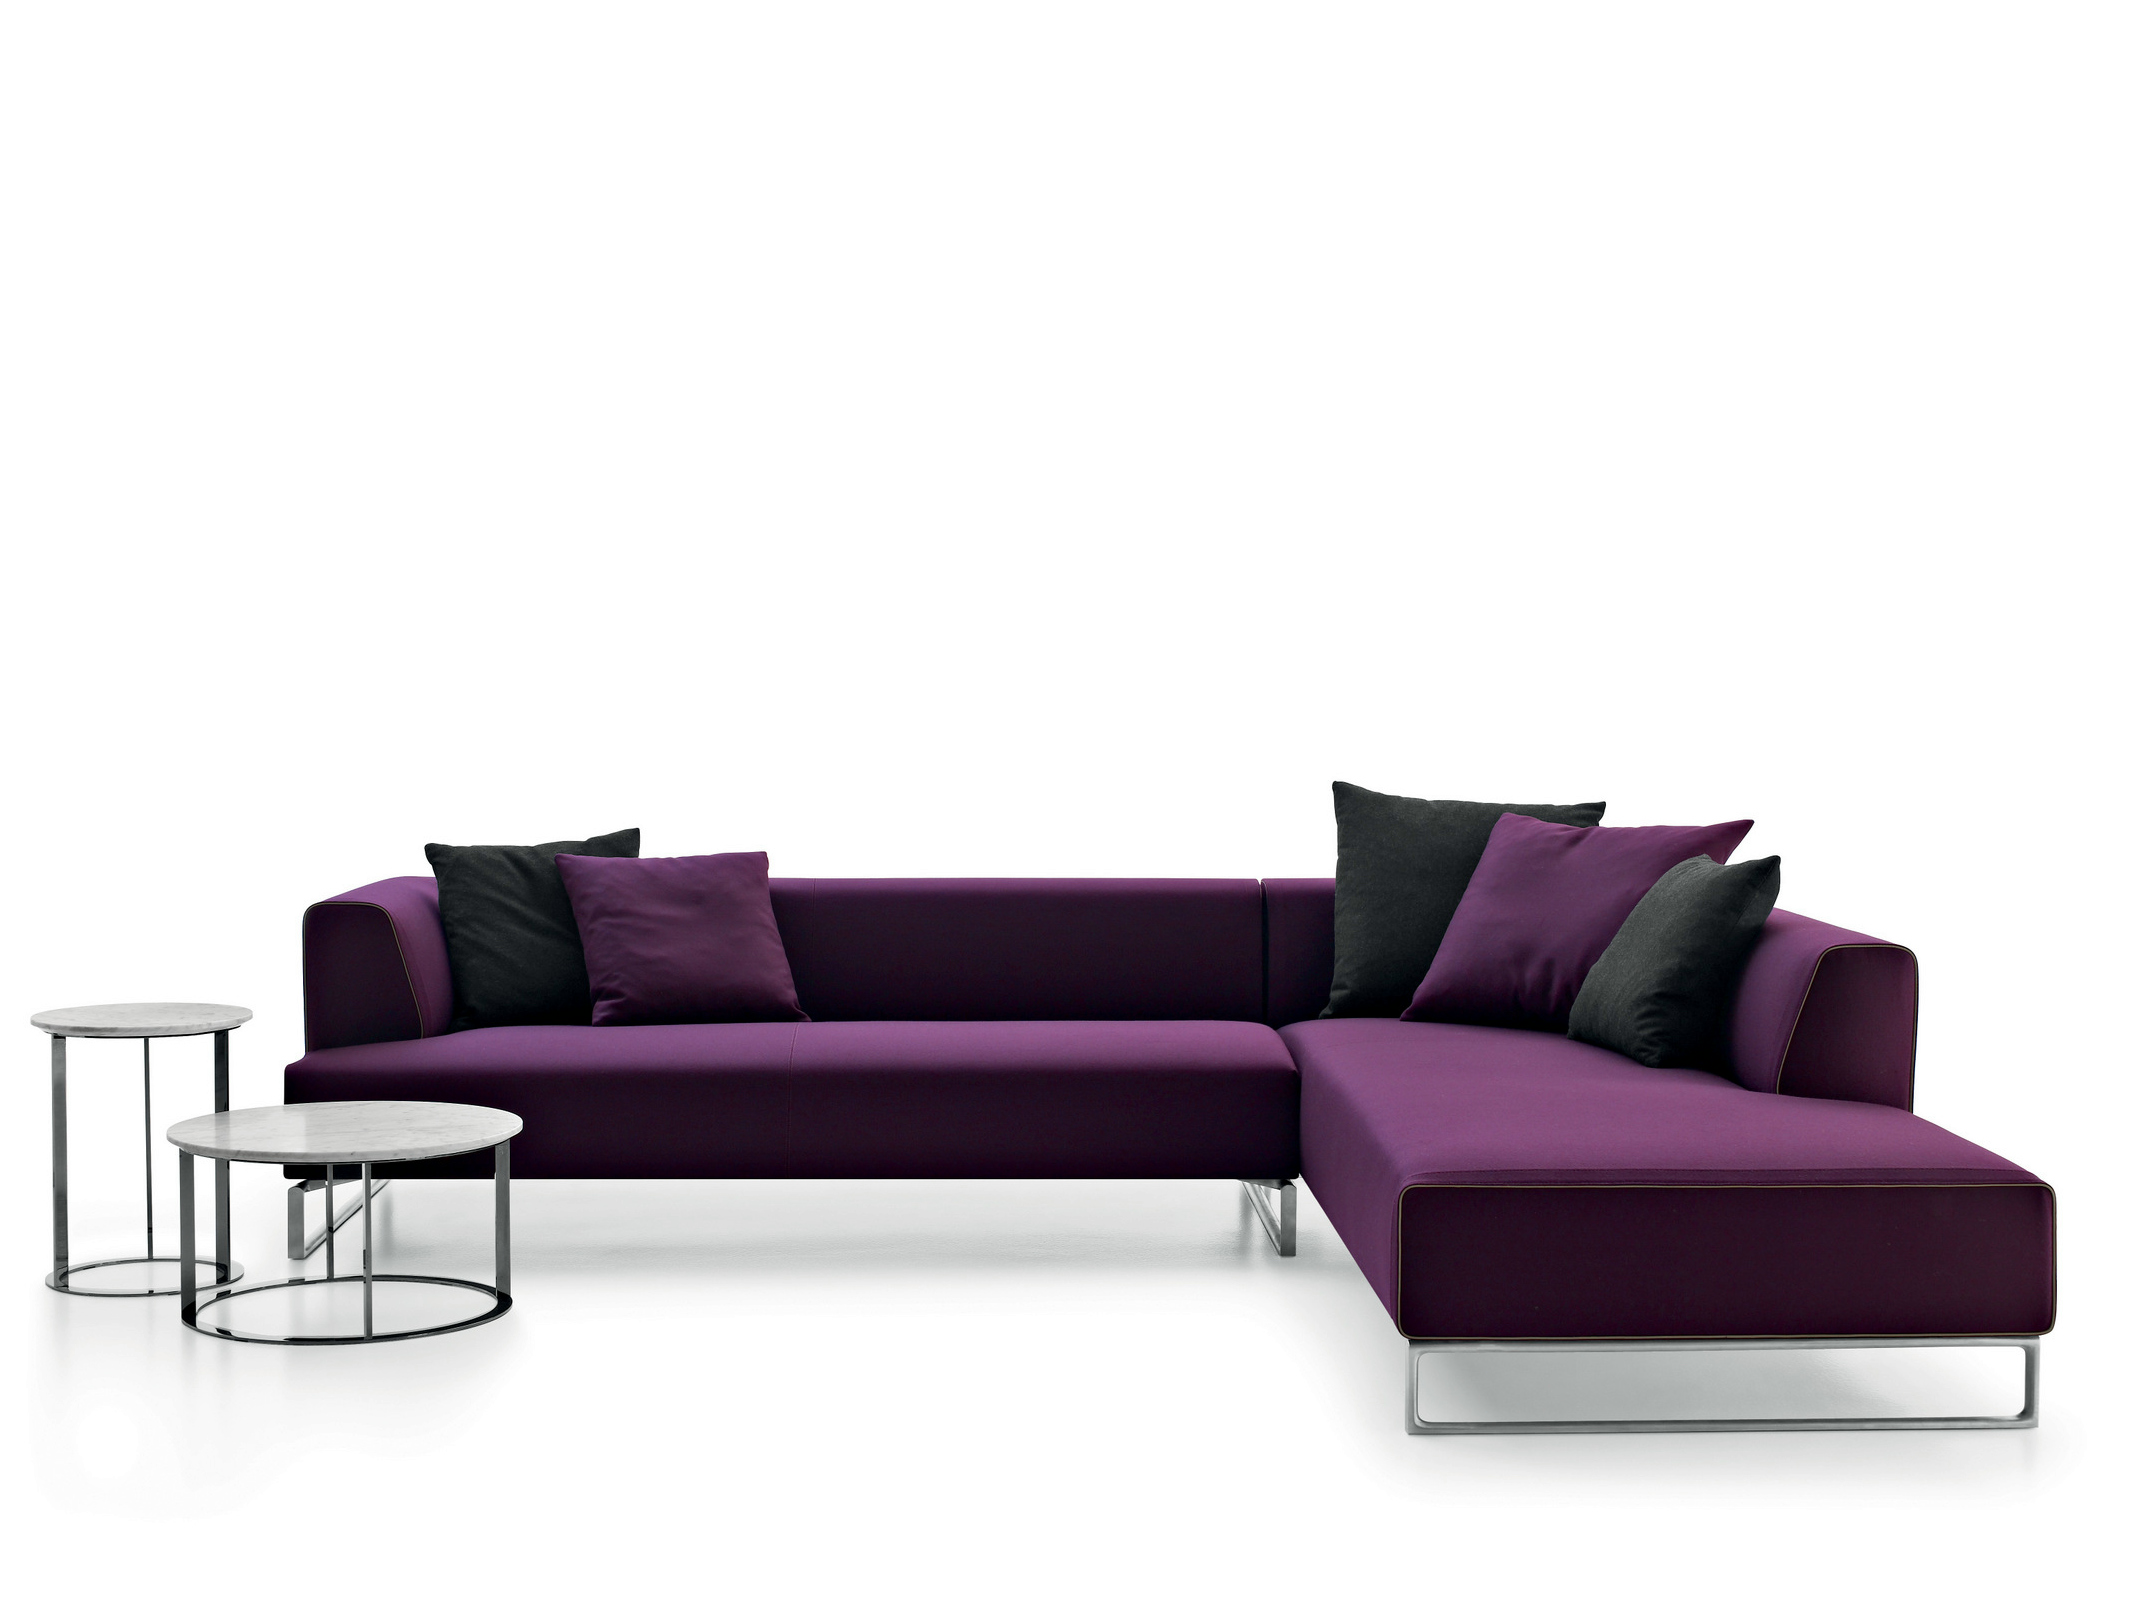 solo 39 14 corner sofa by b b italia design antonio citterio. Black Bedroom Furniture Sets. Home Design Ideas